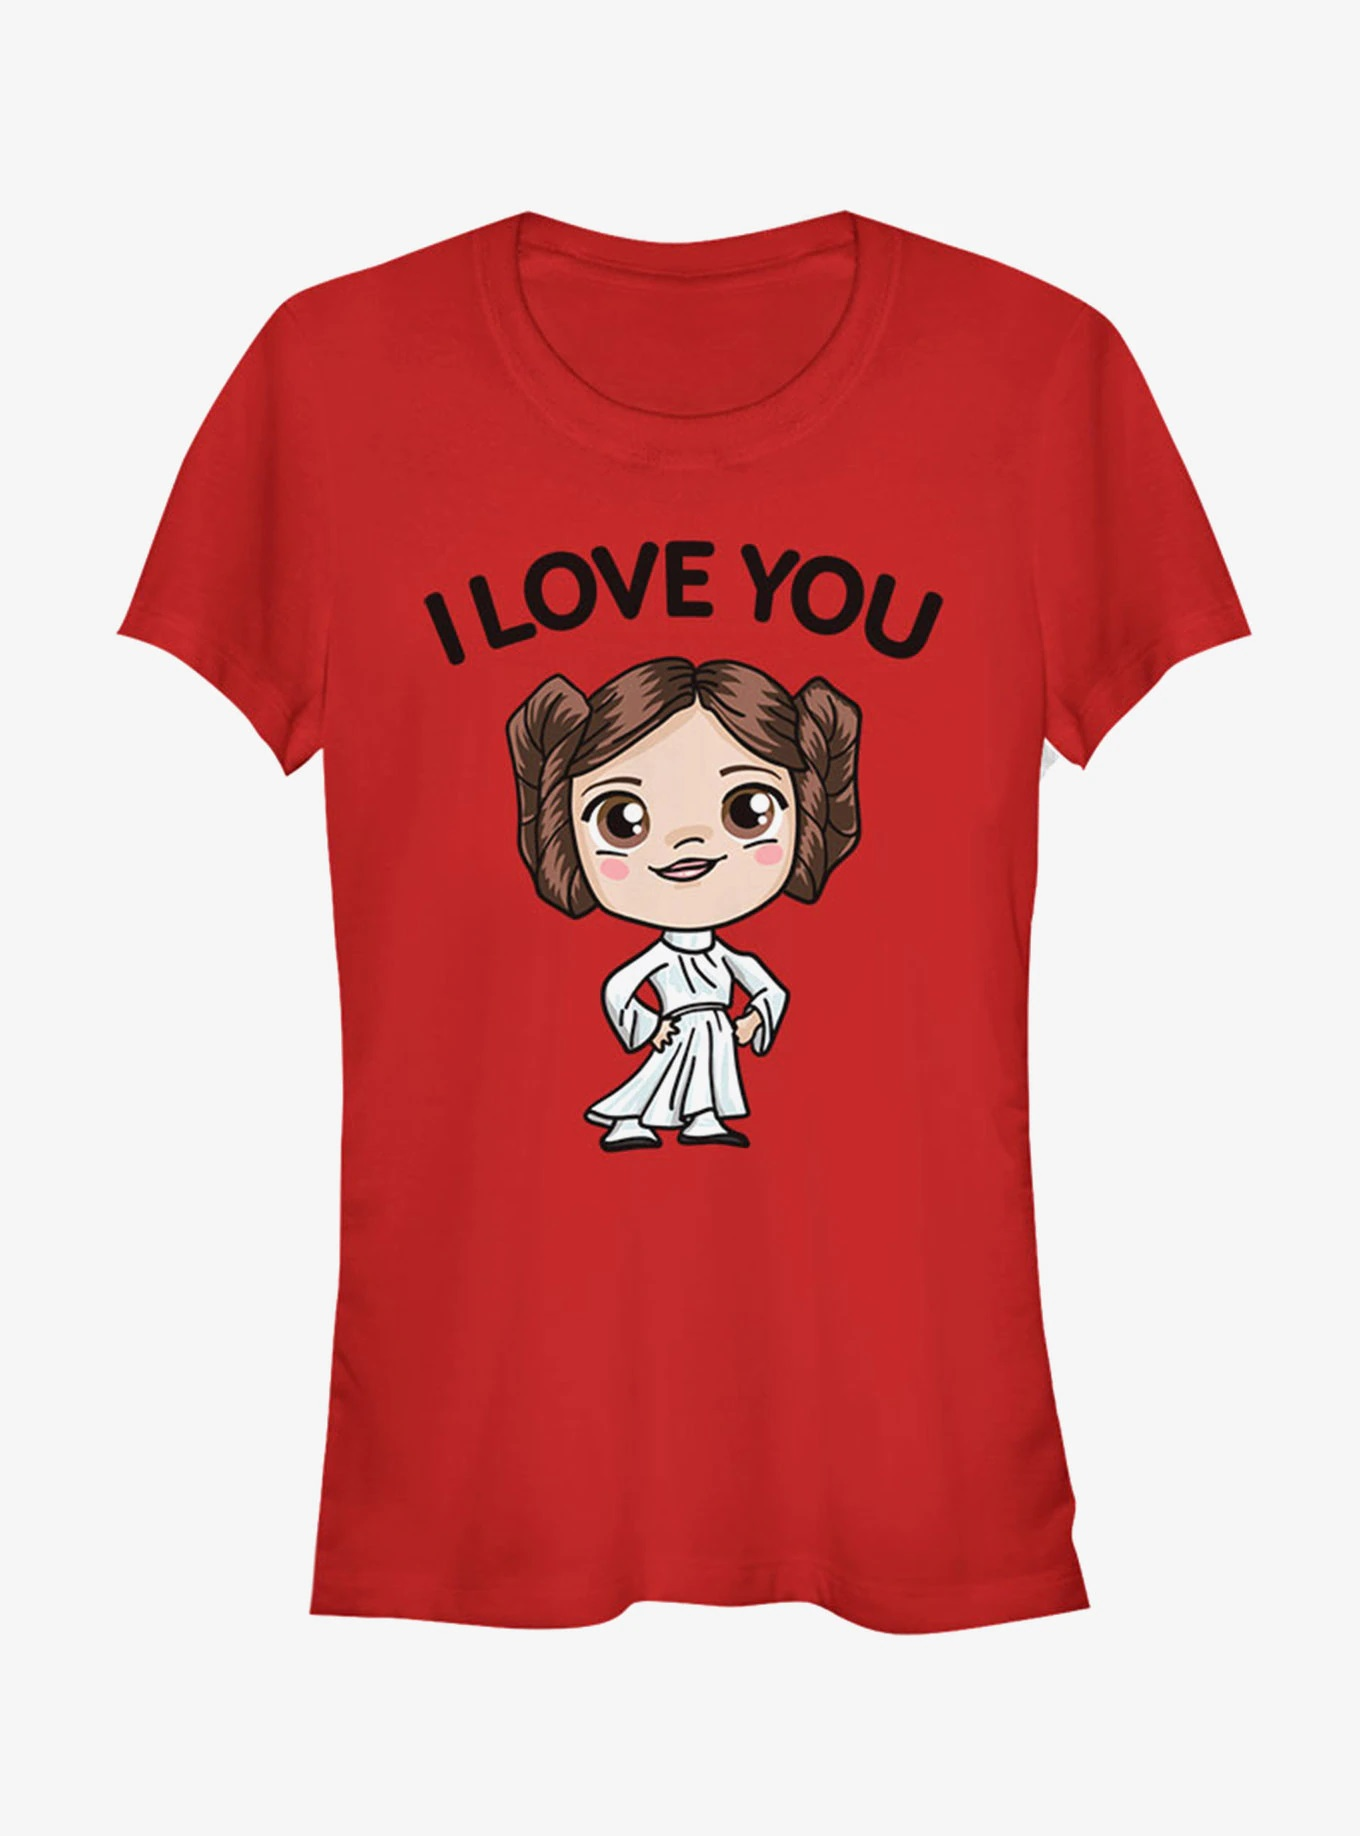 Women's Star Wars Princess Leia I Love You T-Shirt at Hot Topic